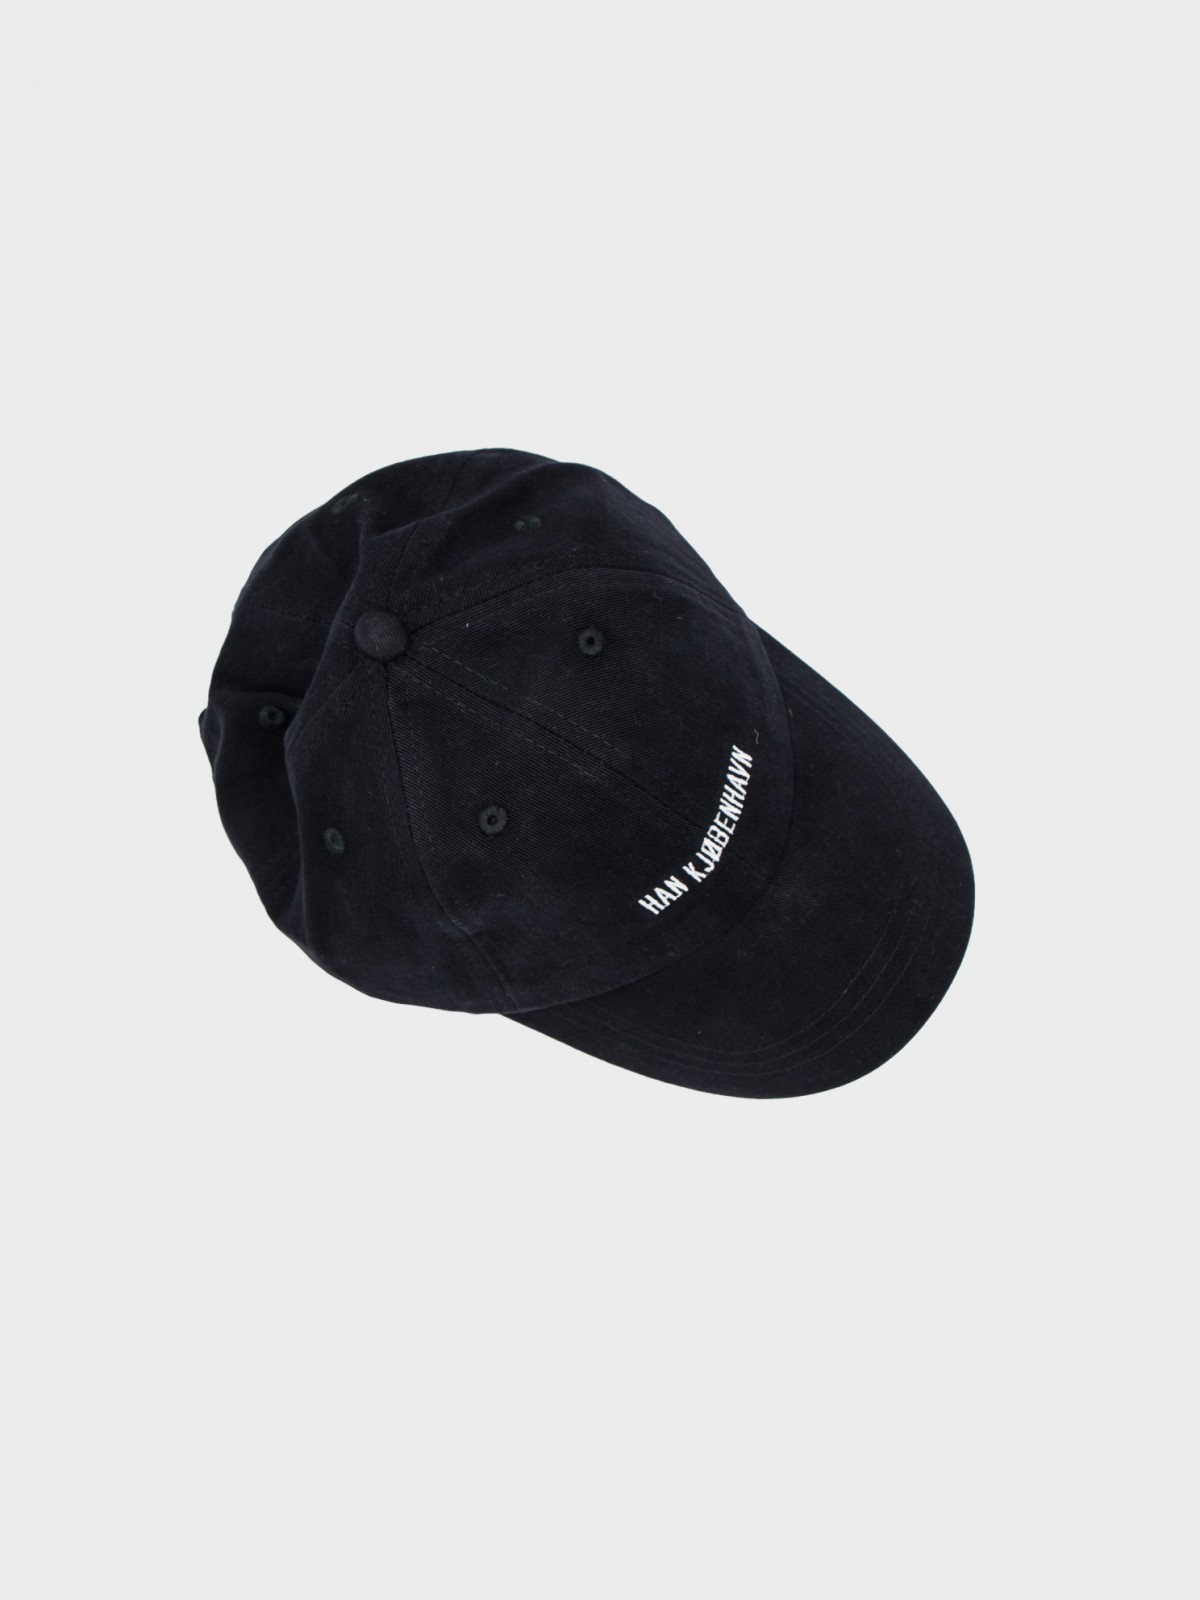 Han Kjøbenhavn Cotton Cap in Black